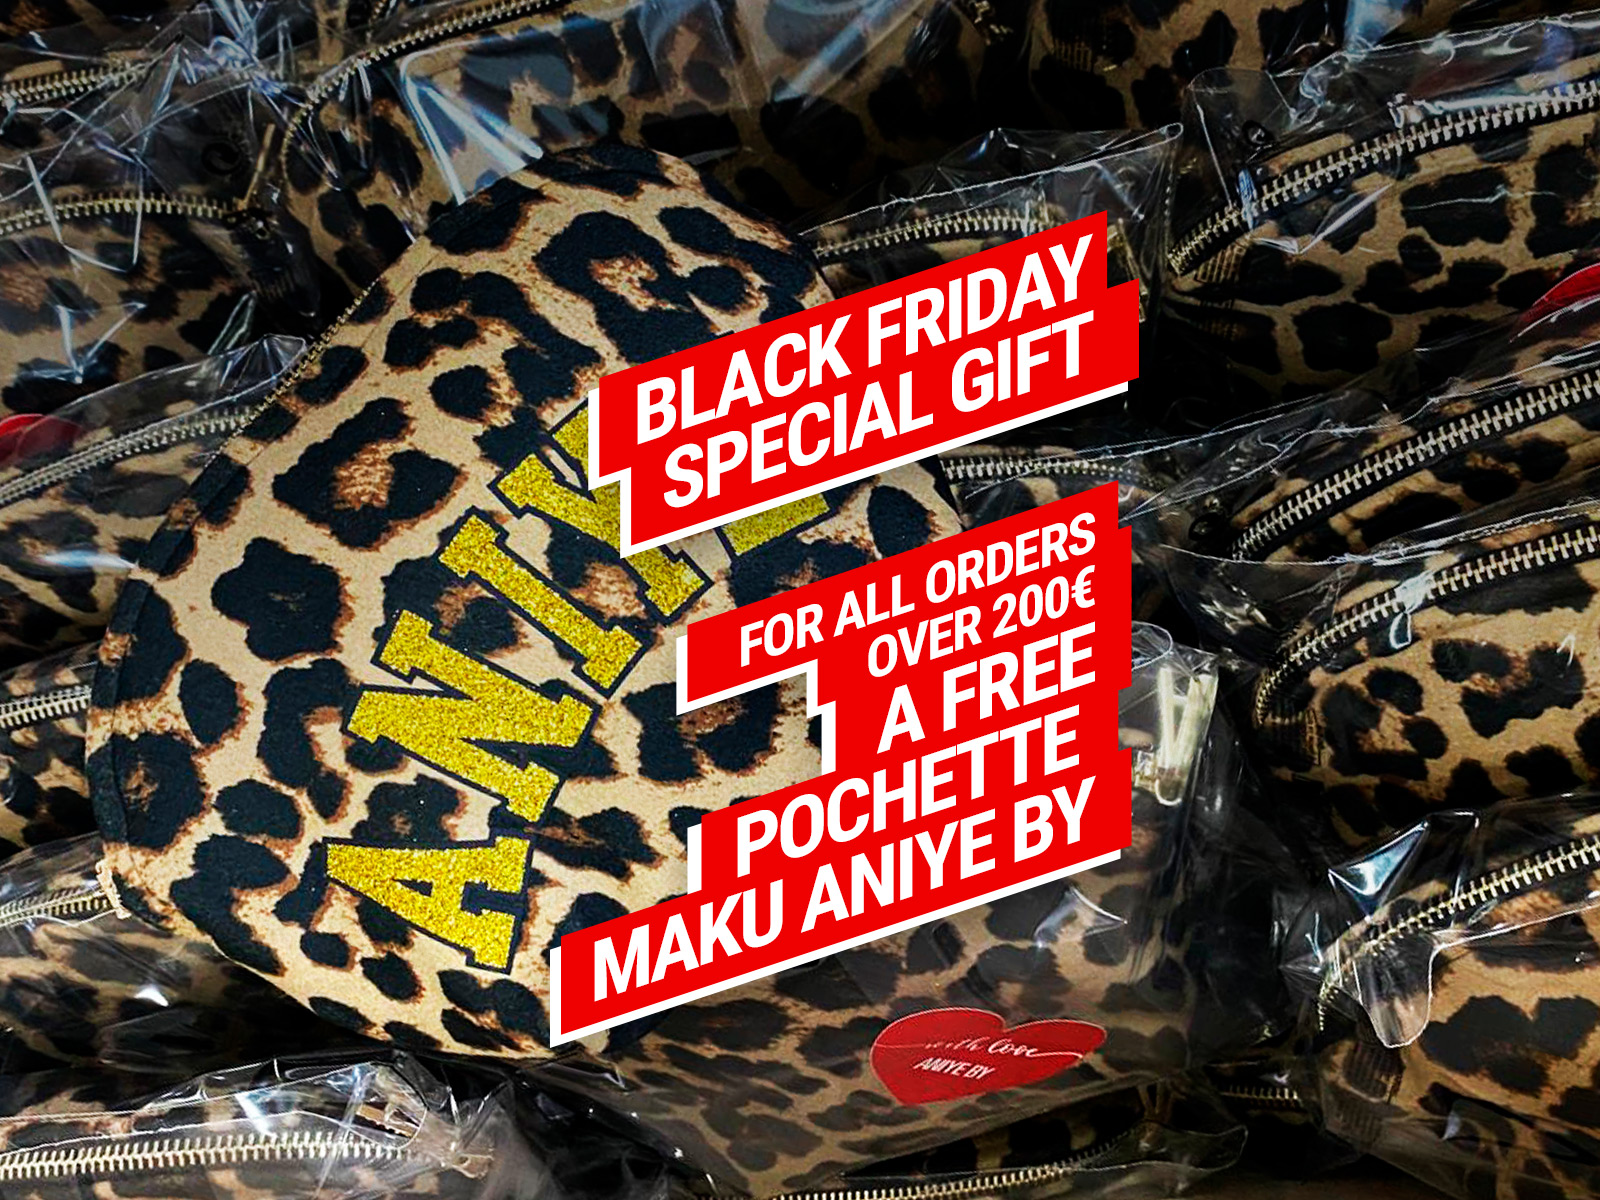 Black Friday special gift